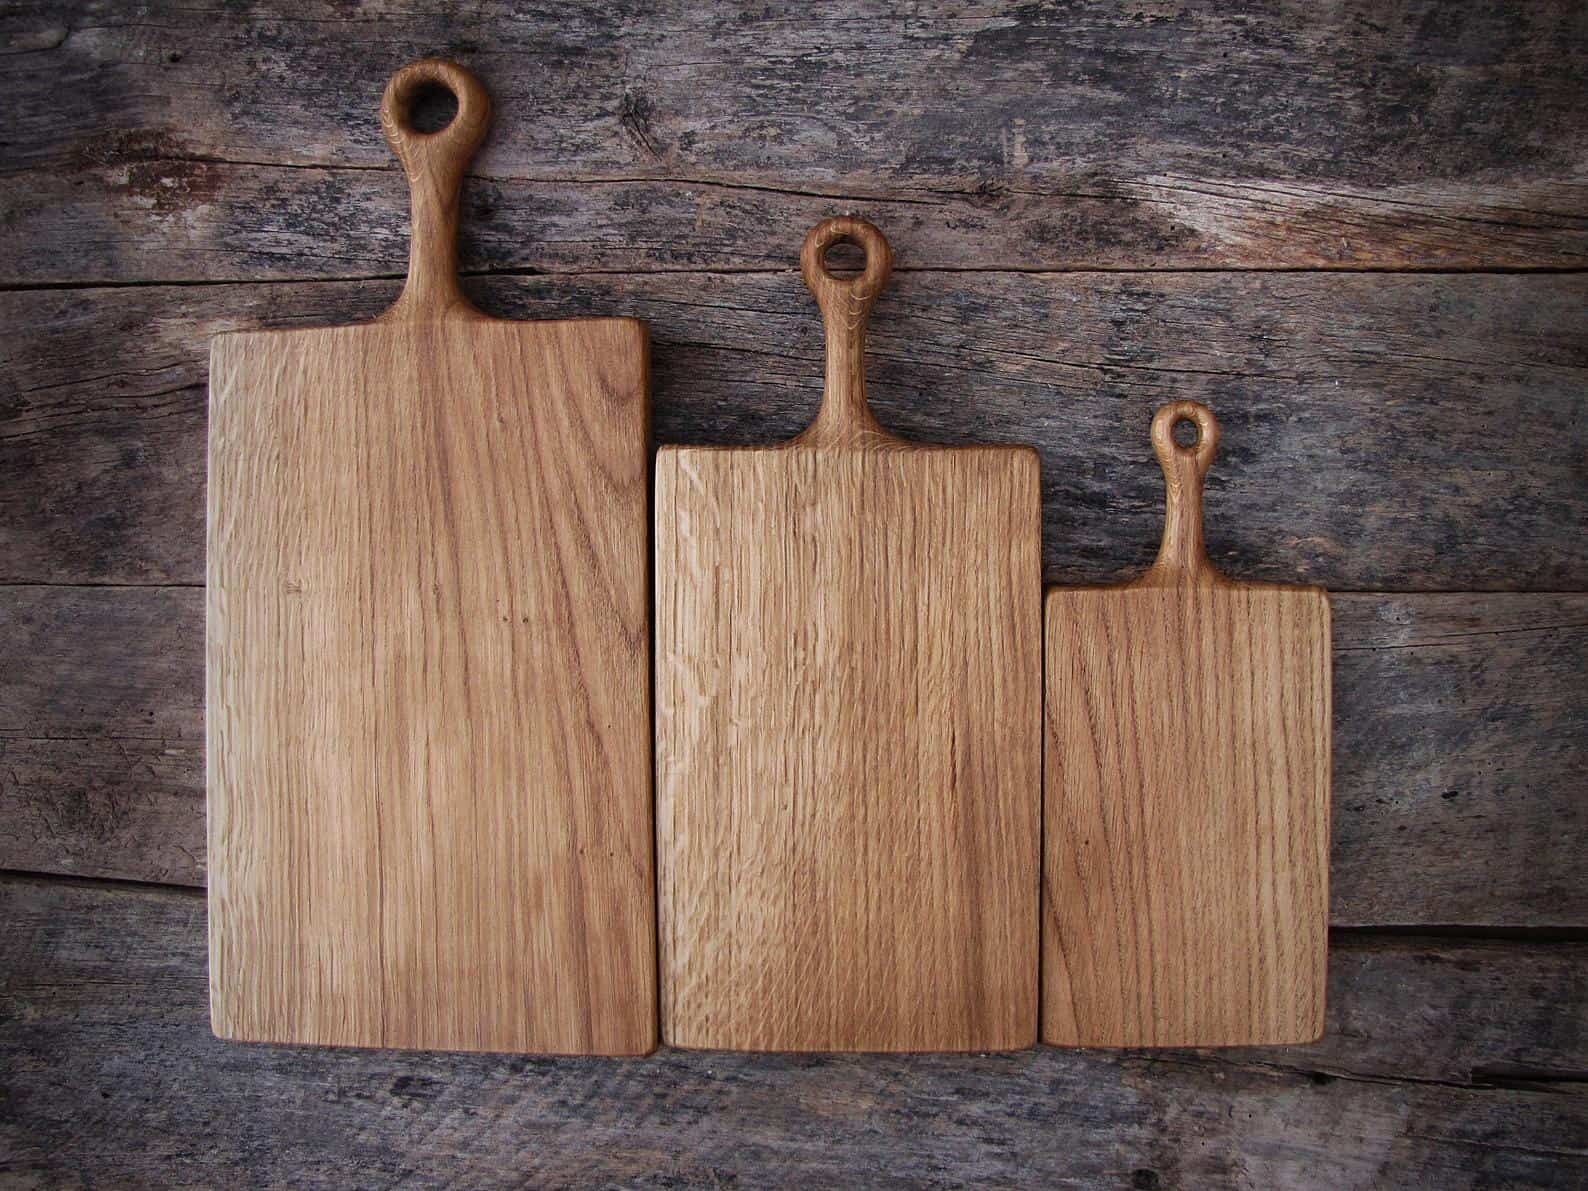 Wooden oak chopping boards with handle